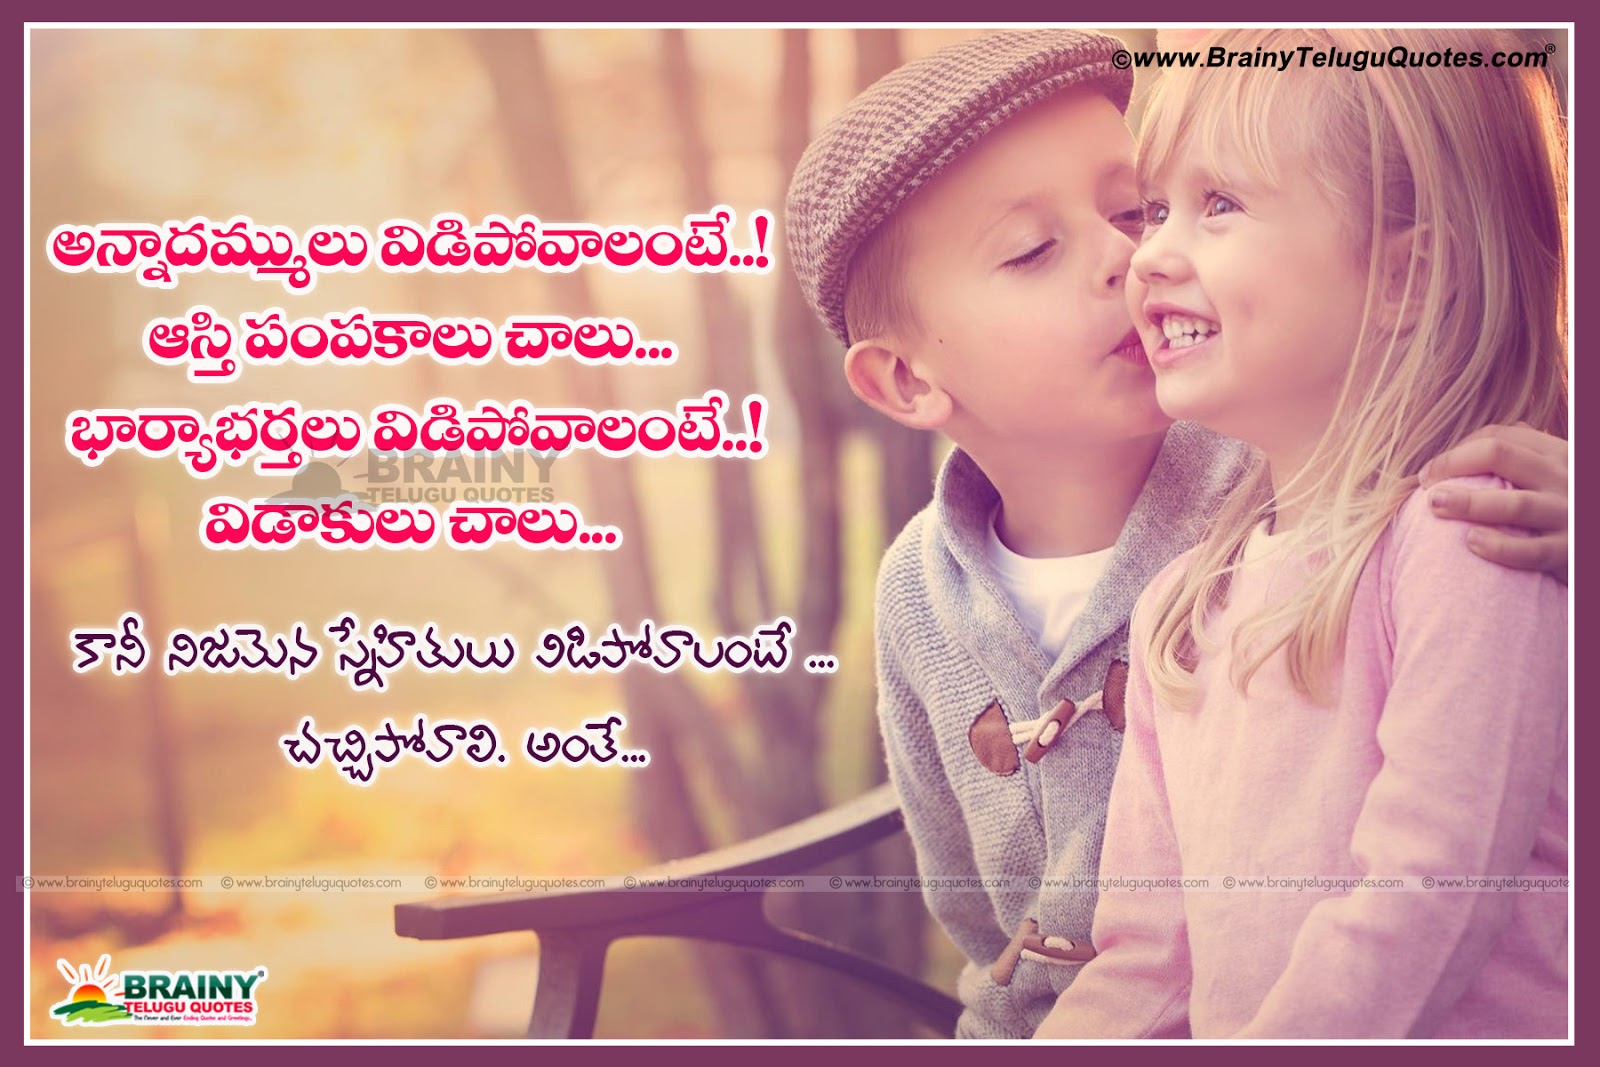 Images of Heart Touching Friendship Messages In Telugu - industrious